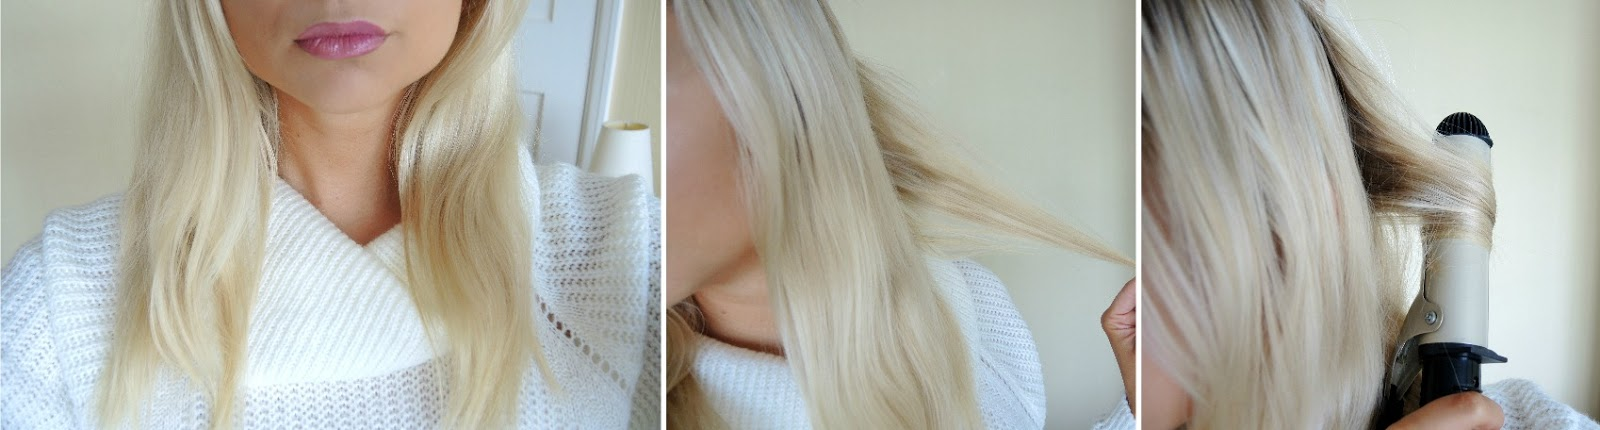 HOW TO: Quick and Easy Hairstyles